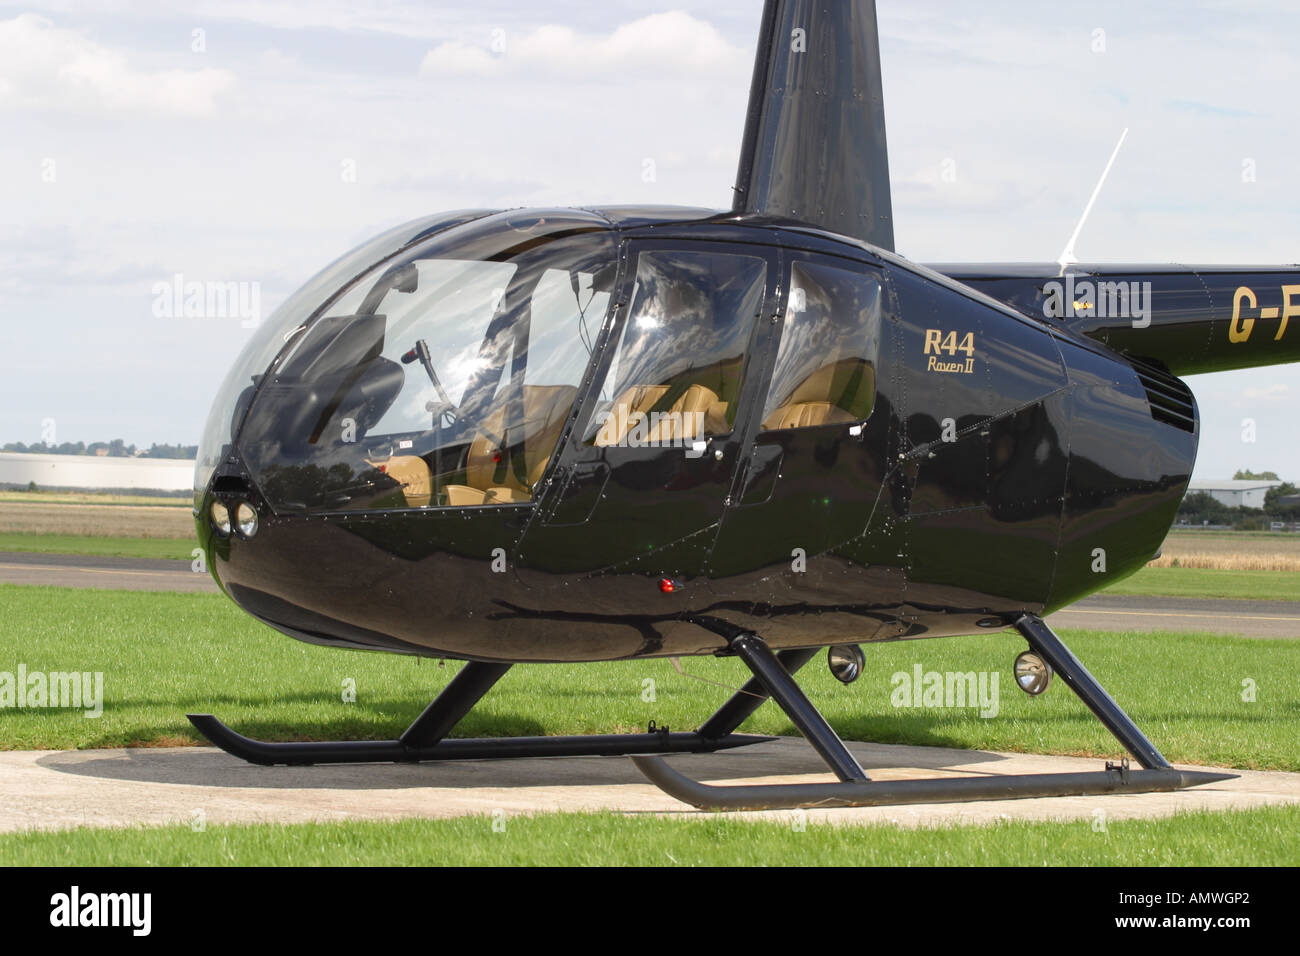 r44 helicopter for sale uk with Stock Photo Robinson R44 Raven Four Seat Private Helicopter 8767841 on 361 also Helicopter Pol Training Yorkshire Robinson R44 besides G Wwow Private Robinson R44 Astro Raven likewise Stock Photo Robinson R44 Raven Four Seat Private Helicopter 8767841 likewise Military Reveals Revolutionary Pilotless Cargo Drone Deliver Supplies Territories Plagued Roadside Bombs.